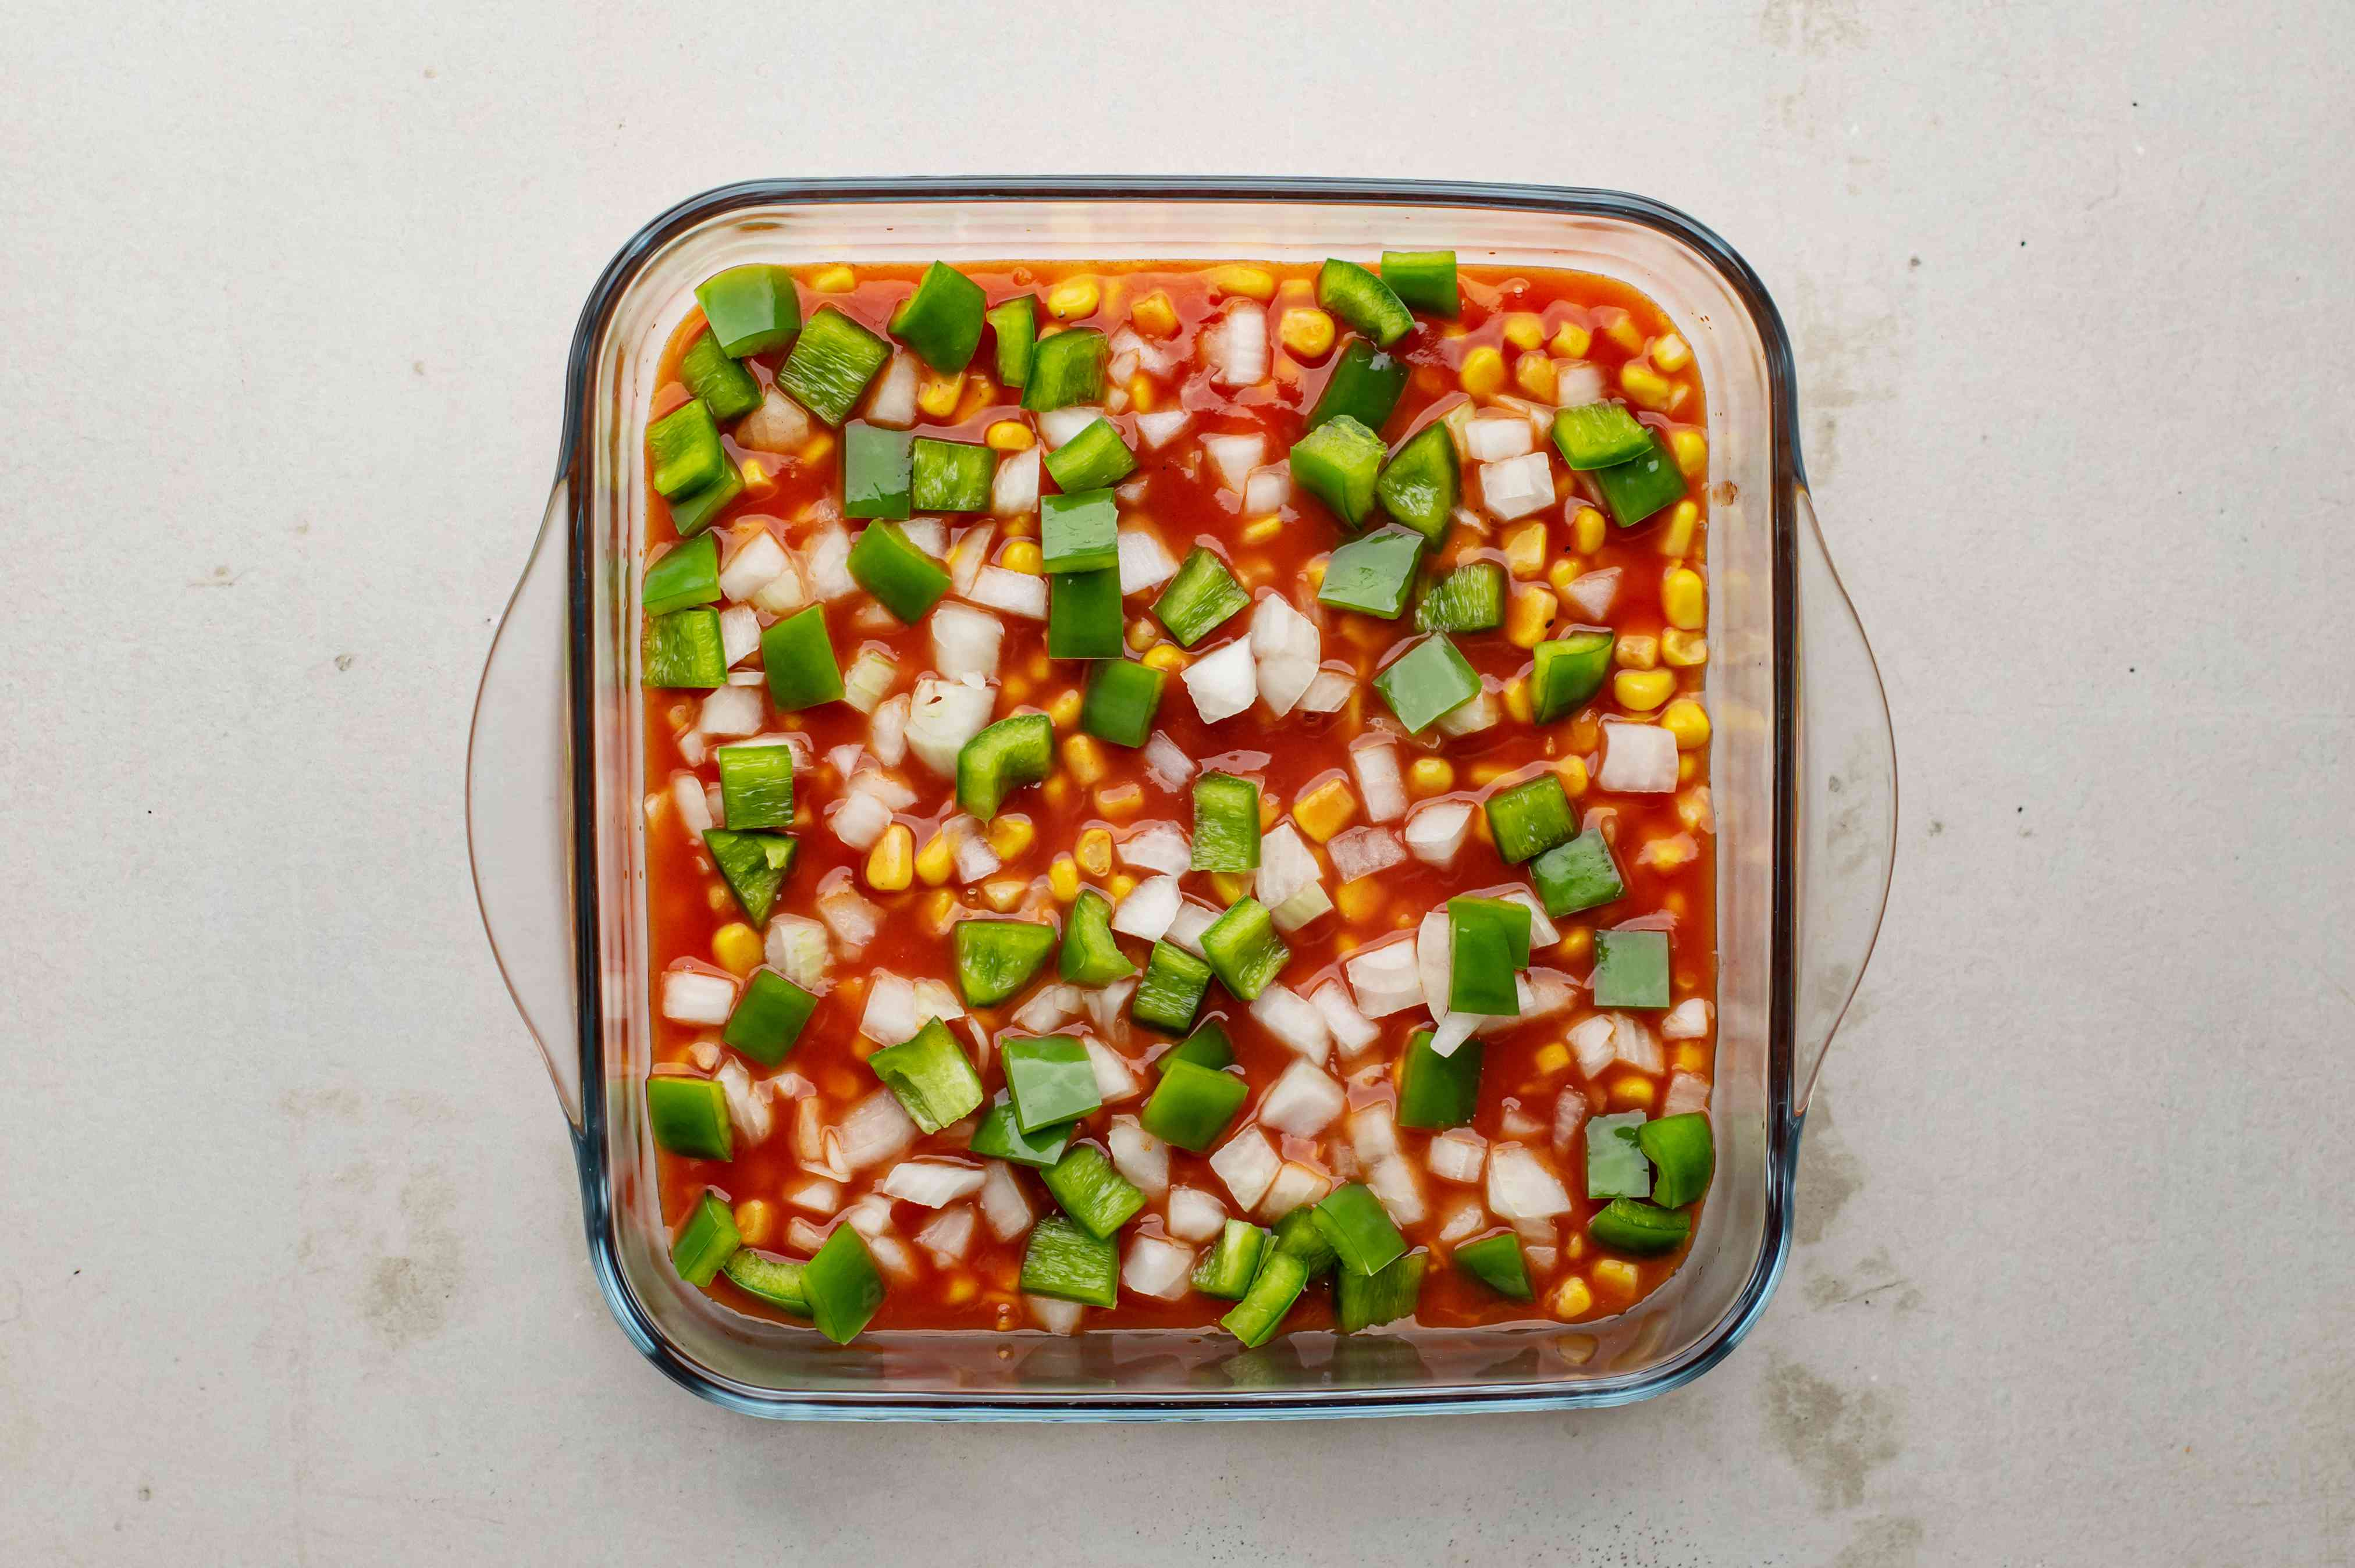 Sprinkle with chopped onion and bell pepper